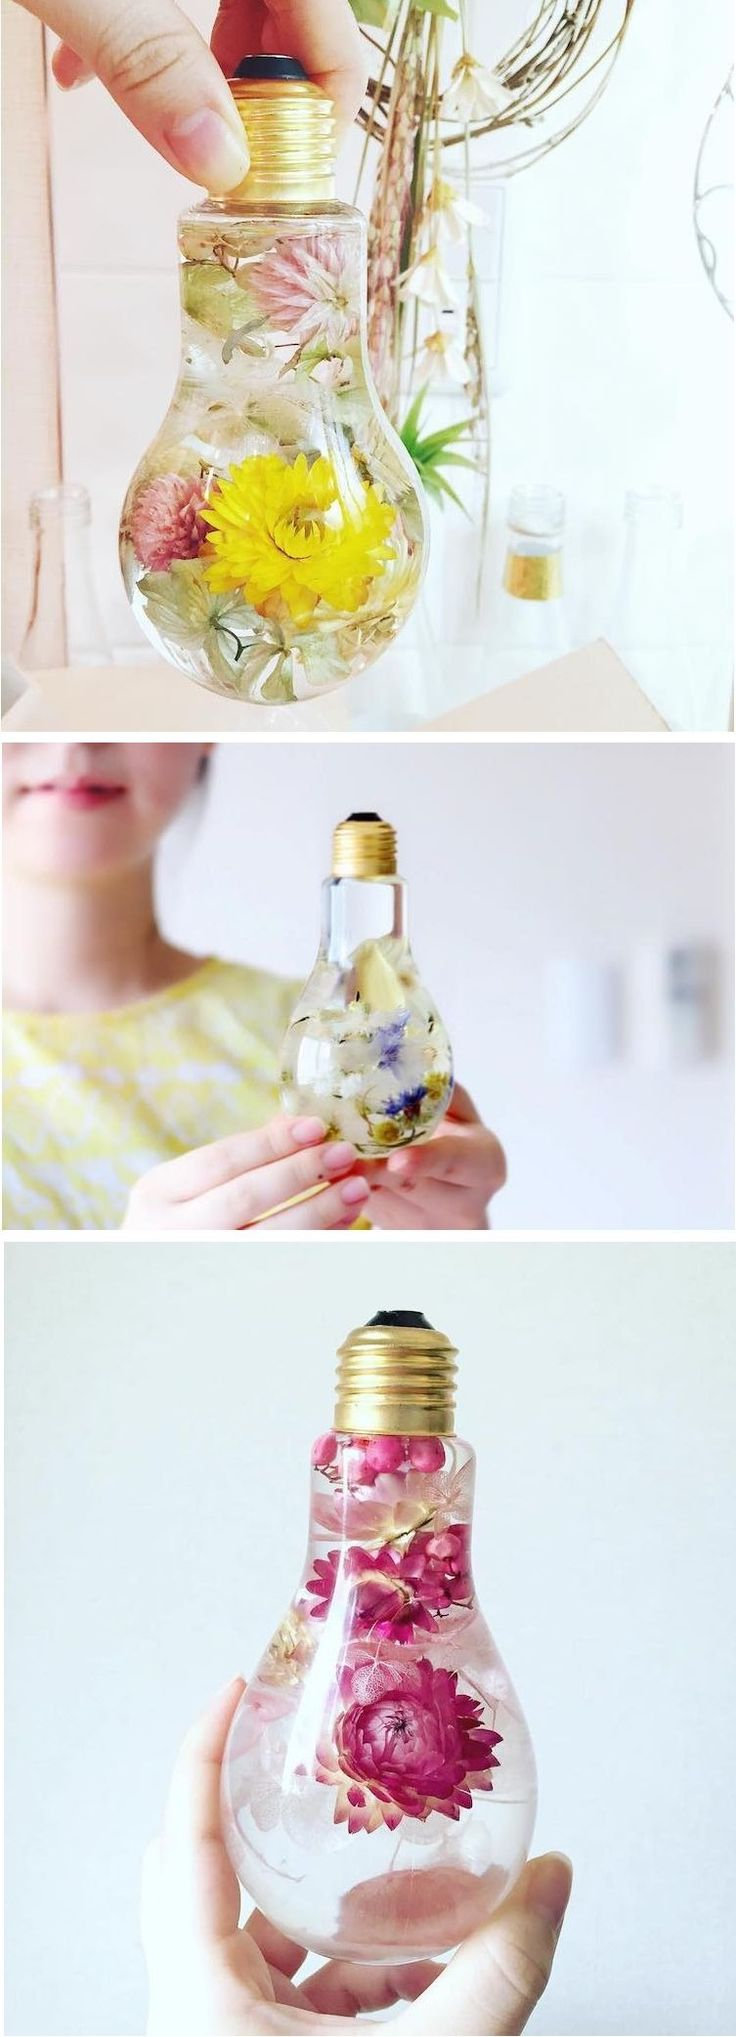 Japanese company Flowerium creates a flower light bulb vase that can be customized to your specifications. The enchanting decor glistens like jewels.